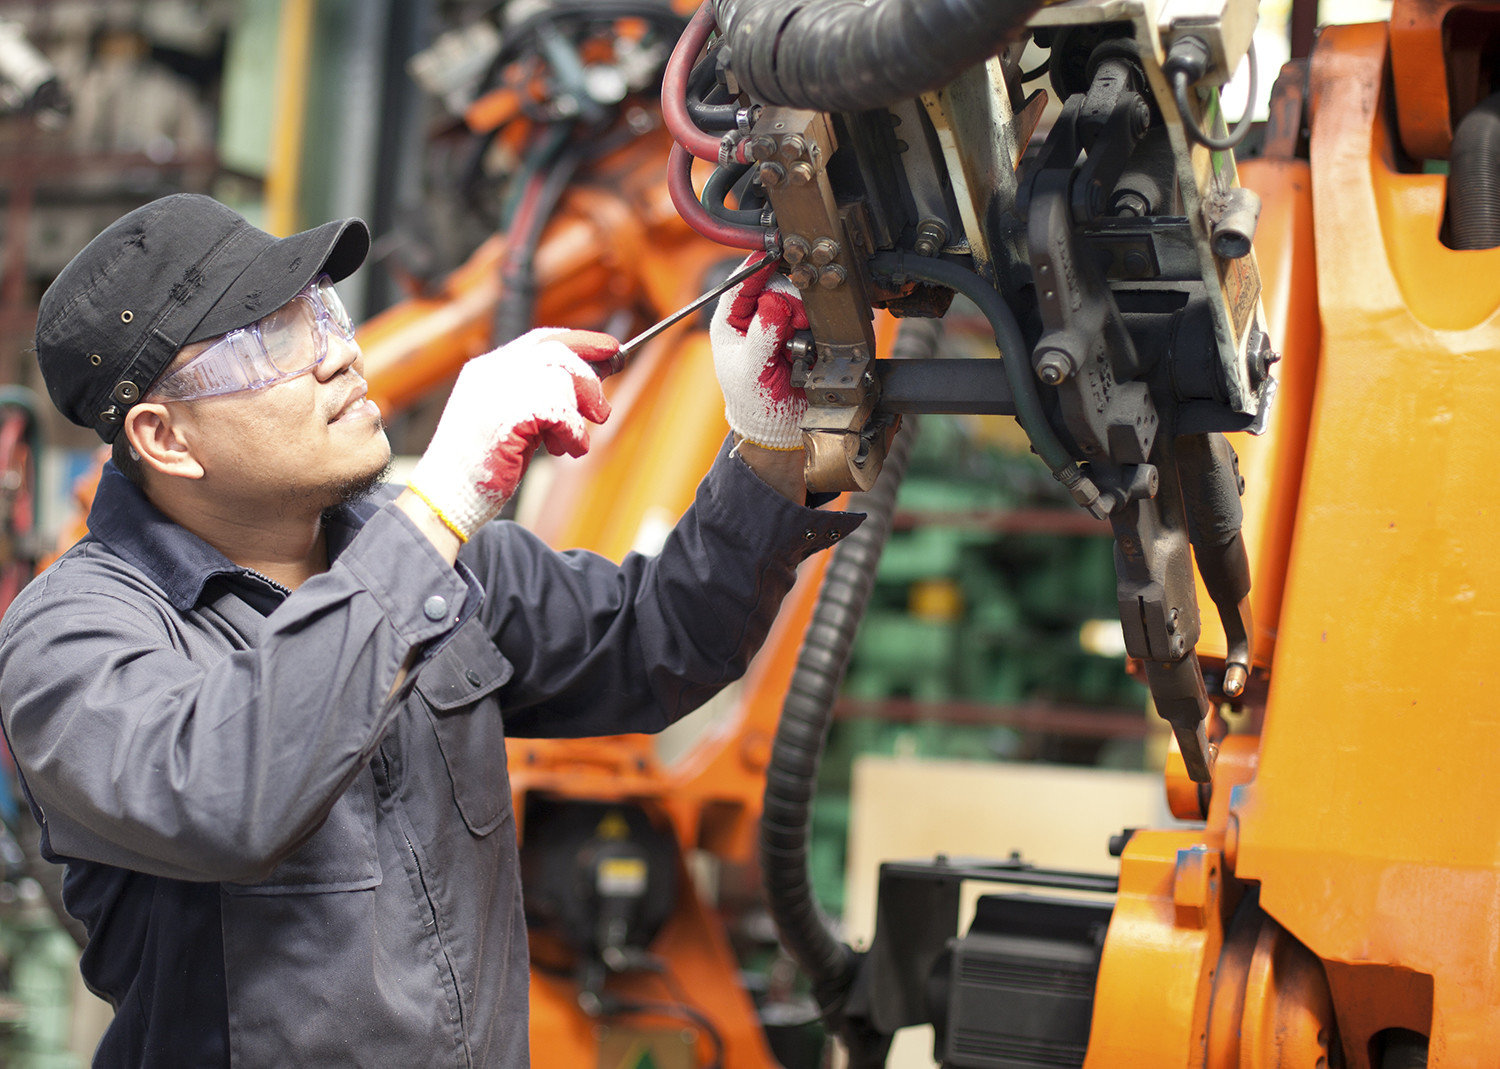 Manufacturing Applications - Plant Maintenance and Repair|Australia CipherLab world leader in AIDC solutions